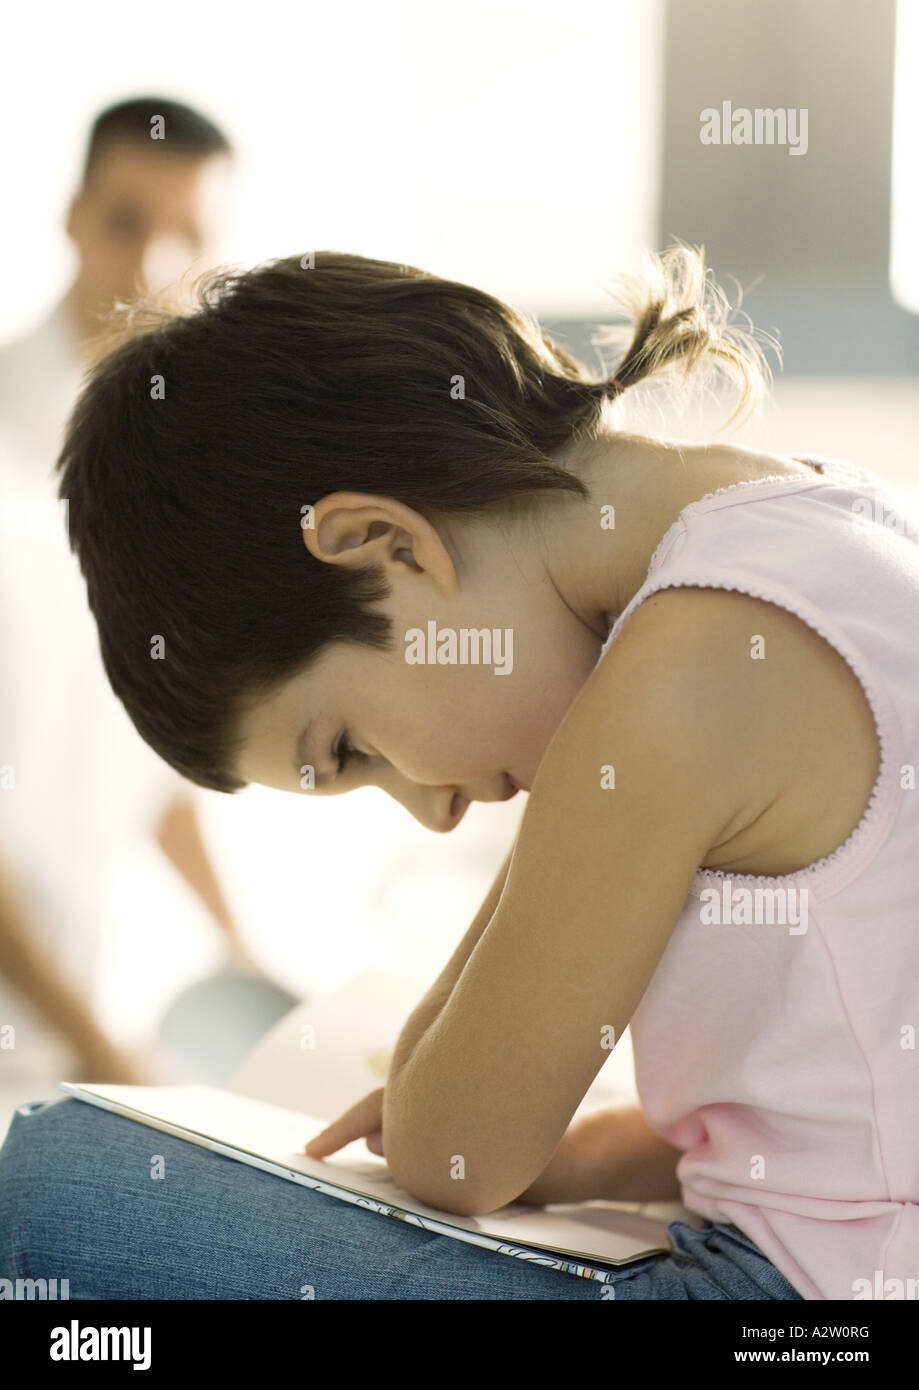 Child reading book - Stock Image